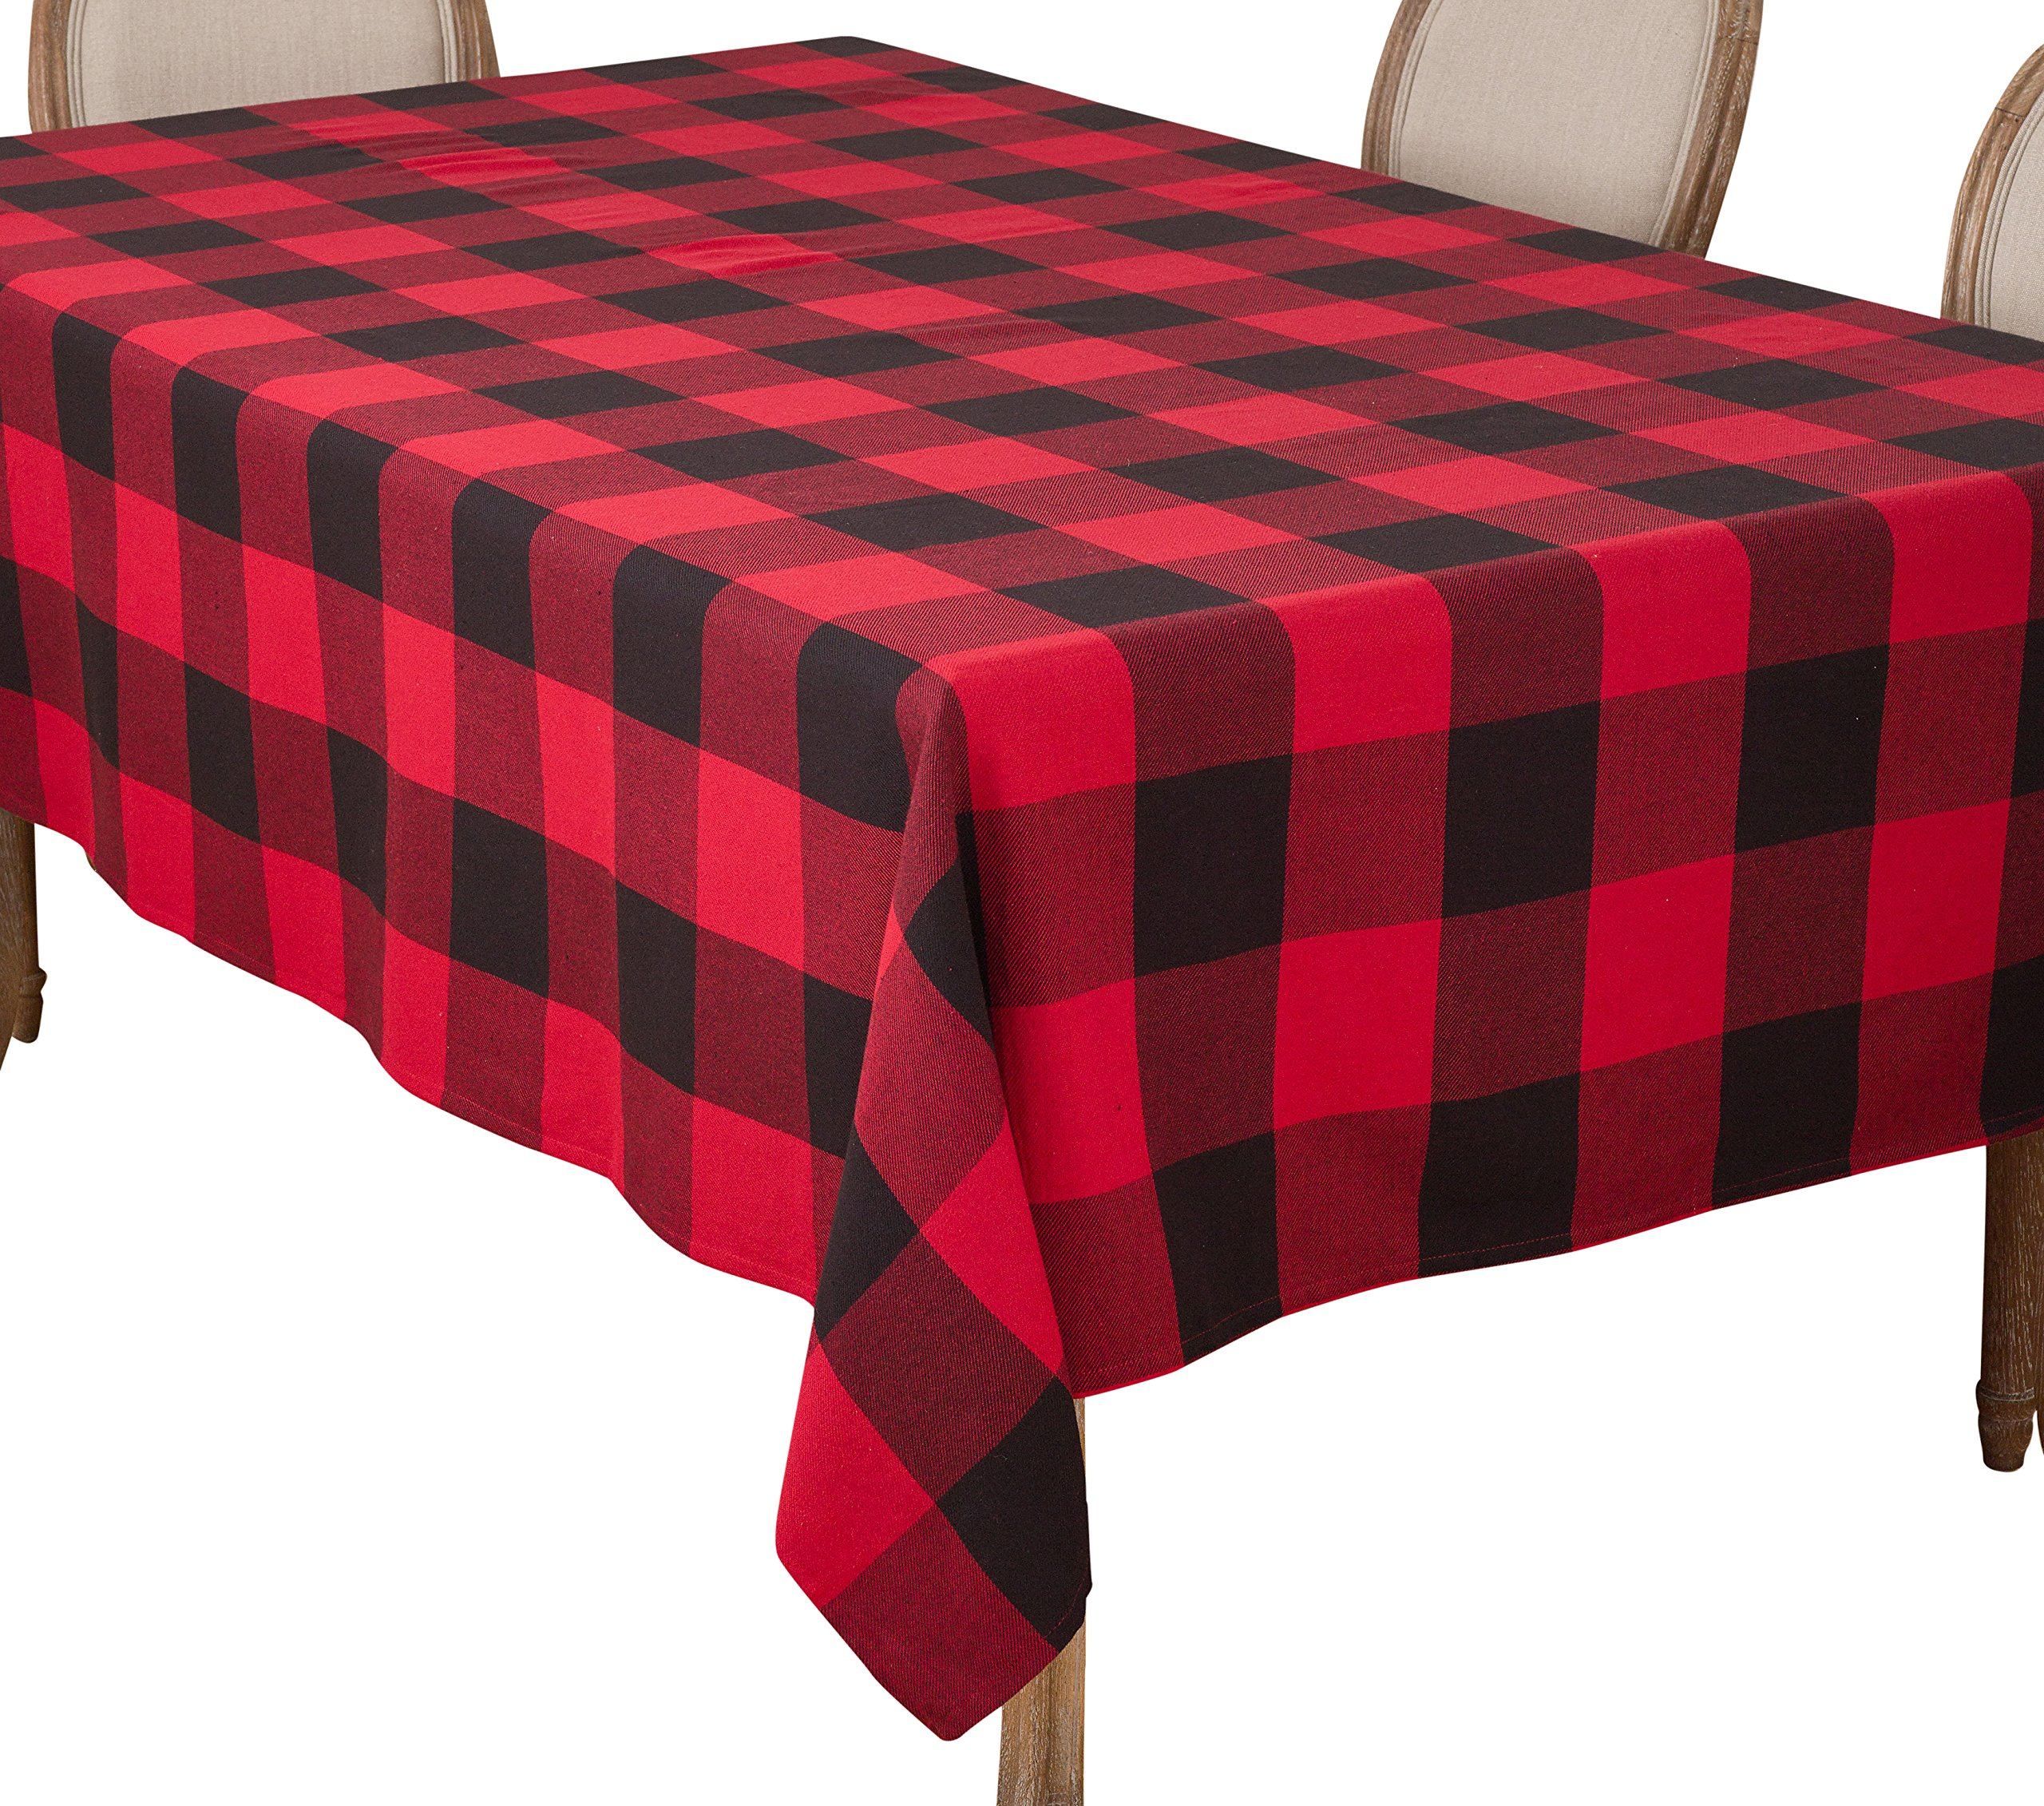 SARO LIFESTYLE Buffalo Plaid Check Design Cotton Tablecloth, 65'' x 160'', Red by SARO LIFESTYLE